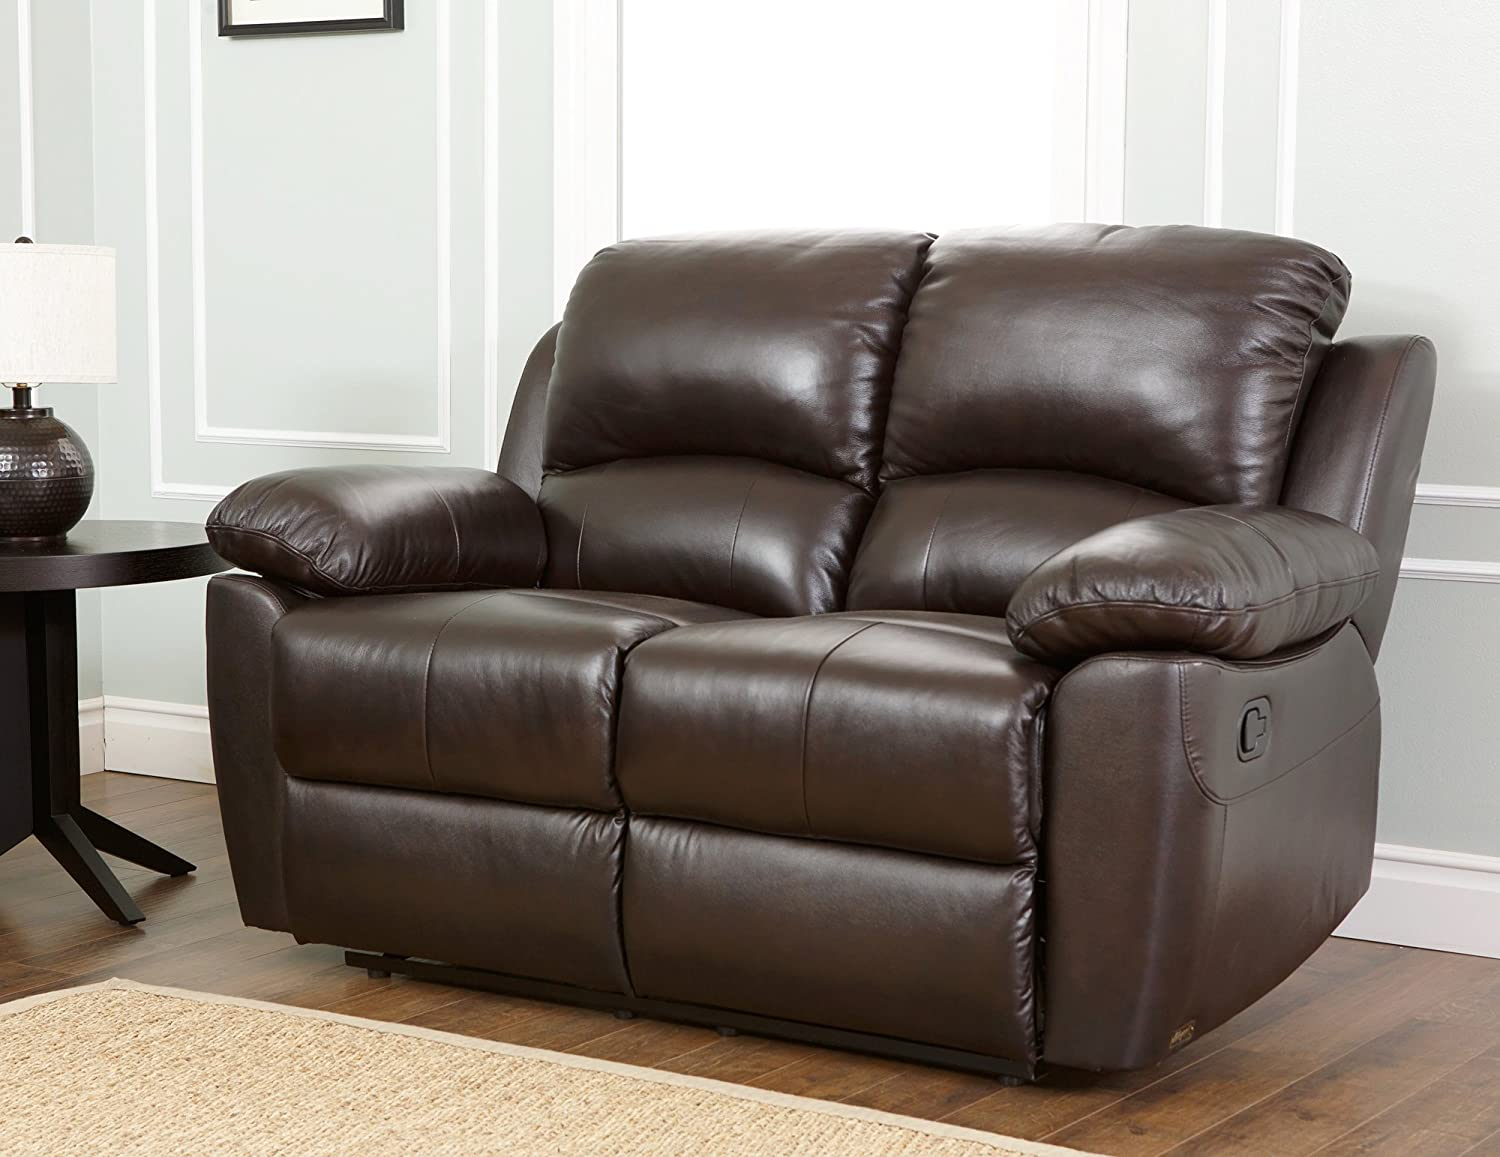 Abbyson Living Signature Italian Leather 3 Piece Sofa Set